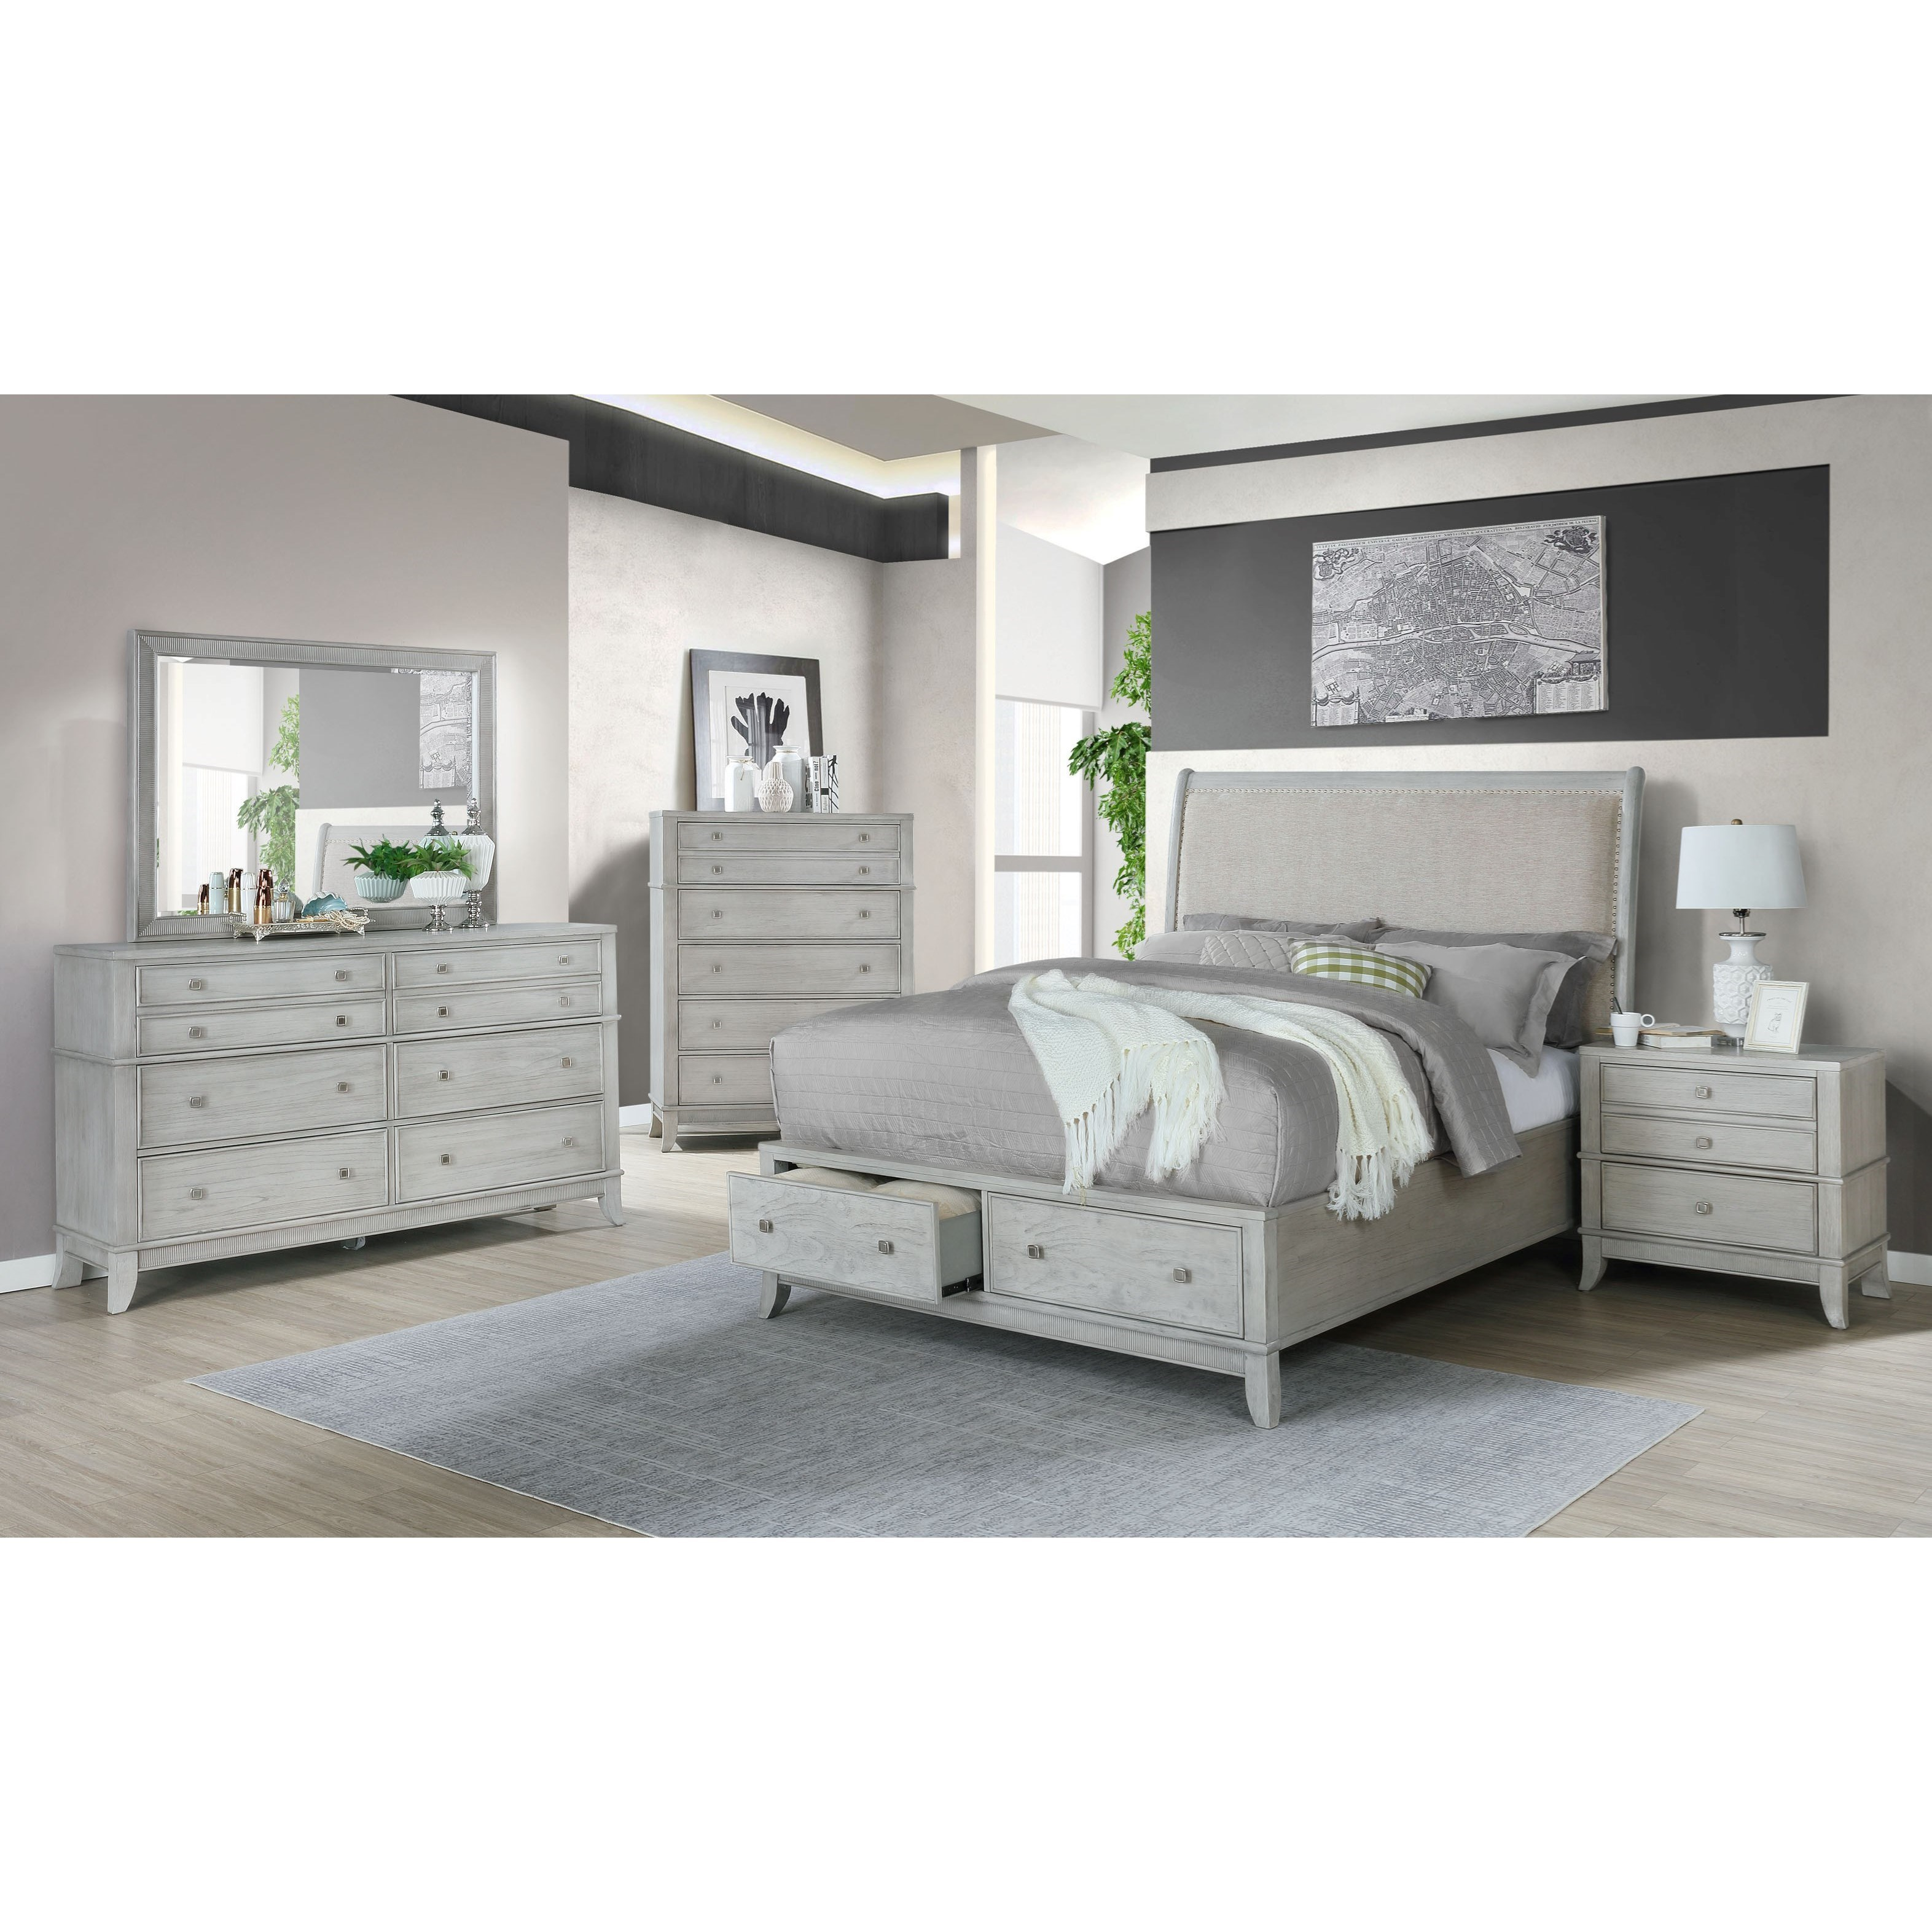 B00191 Queen Bedroom Group by Avalon Furniture at Household Furniture